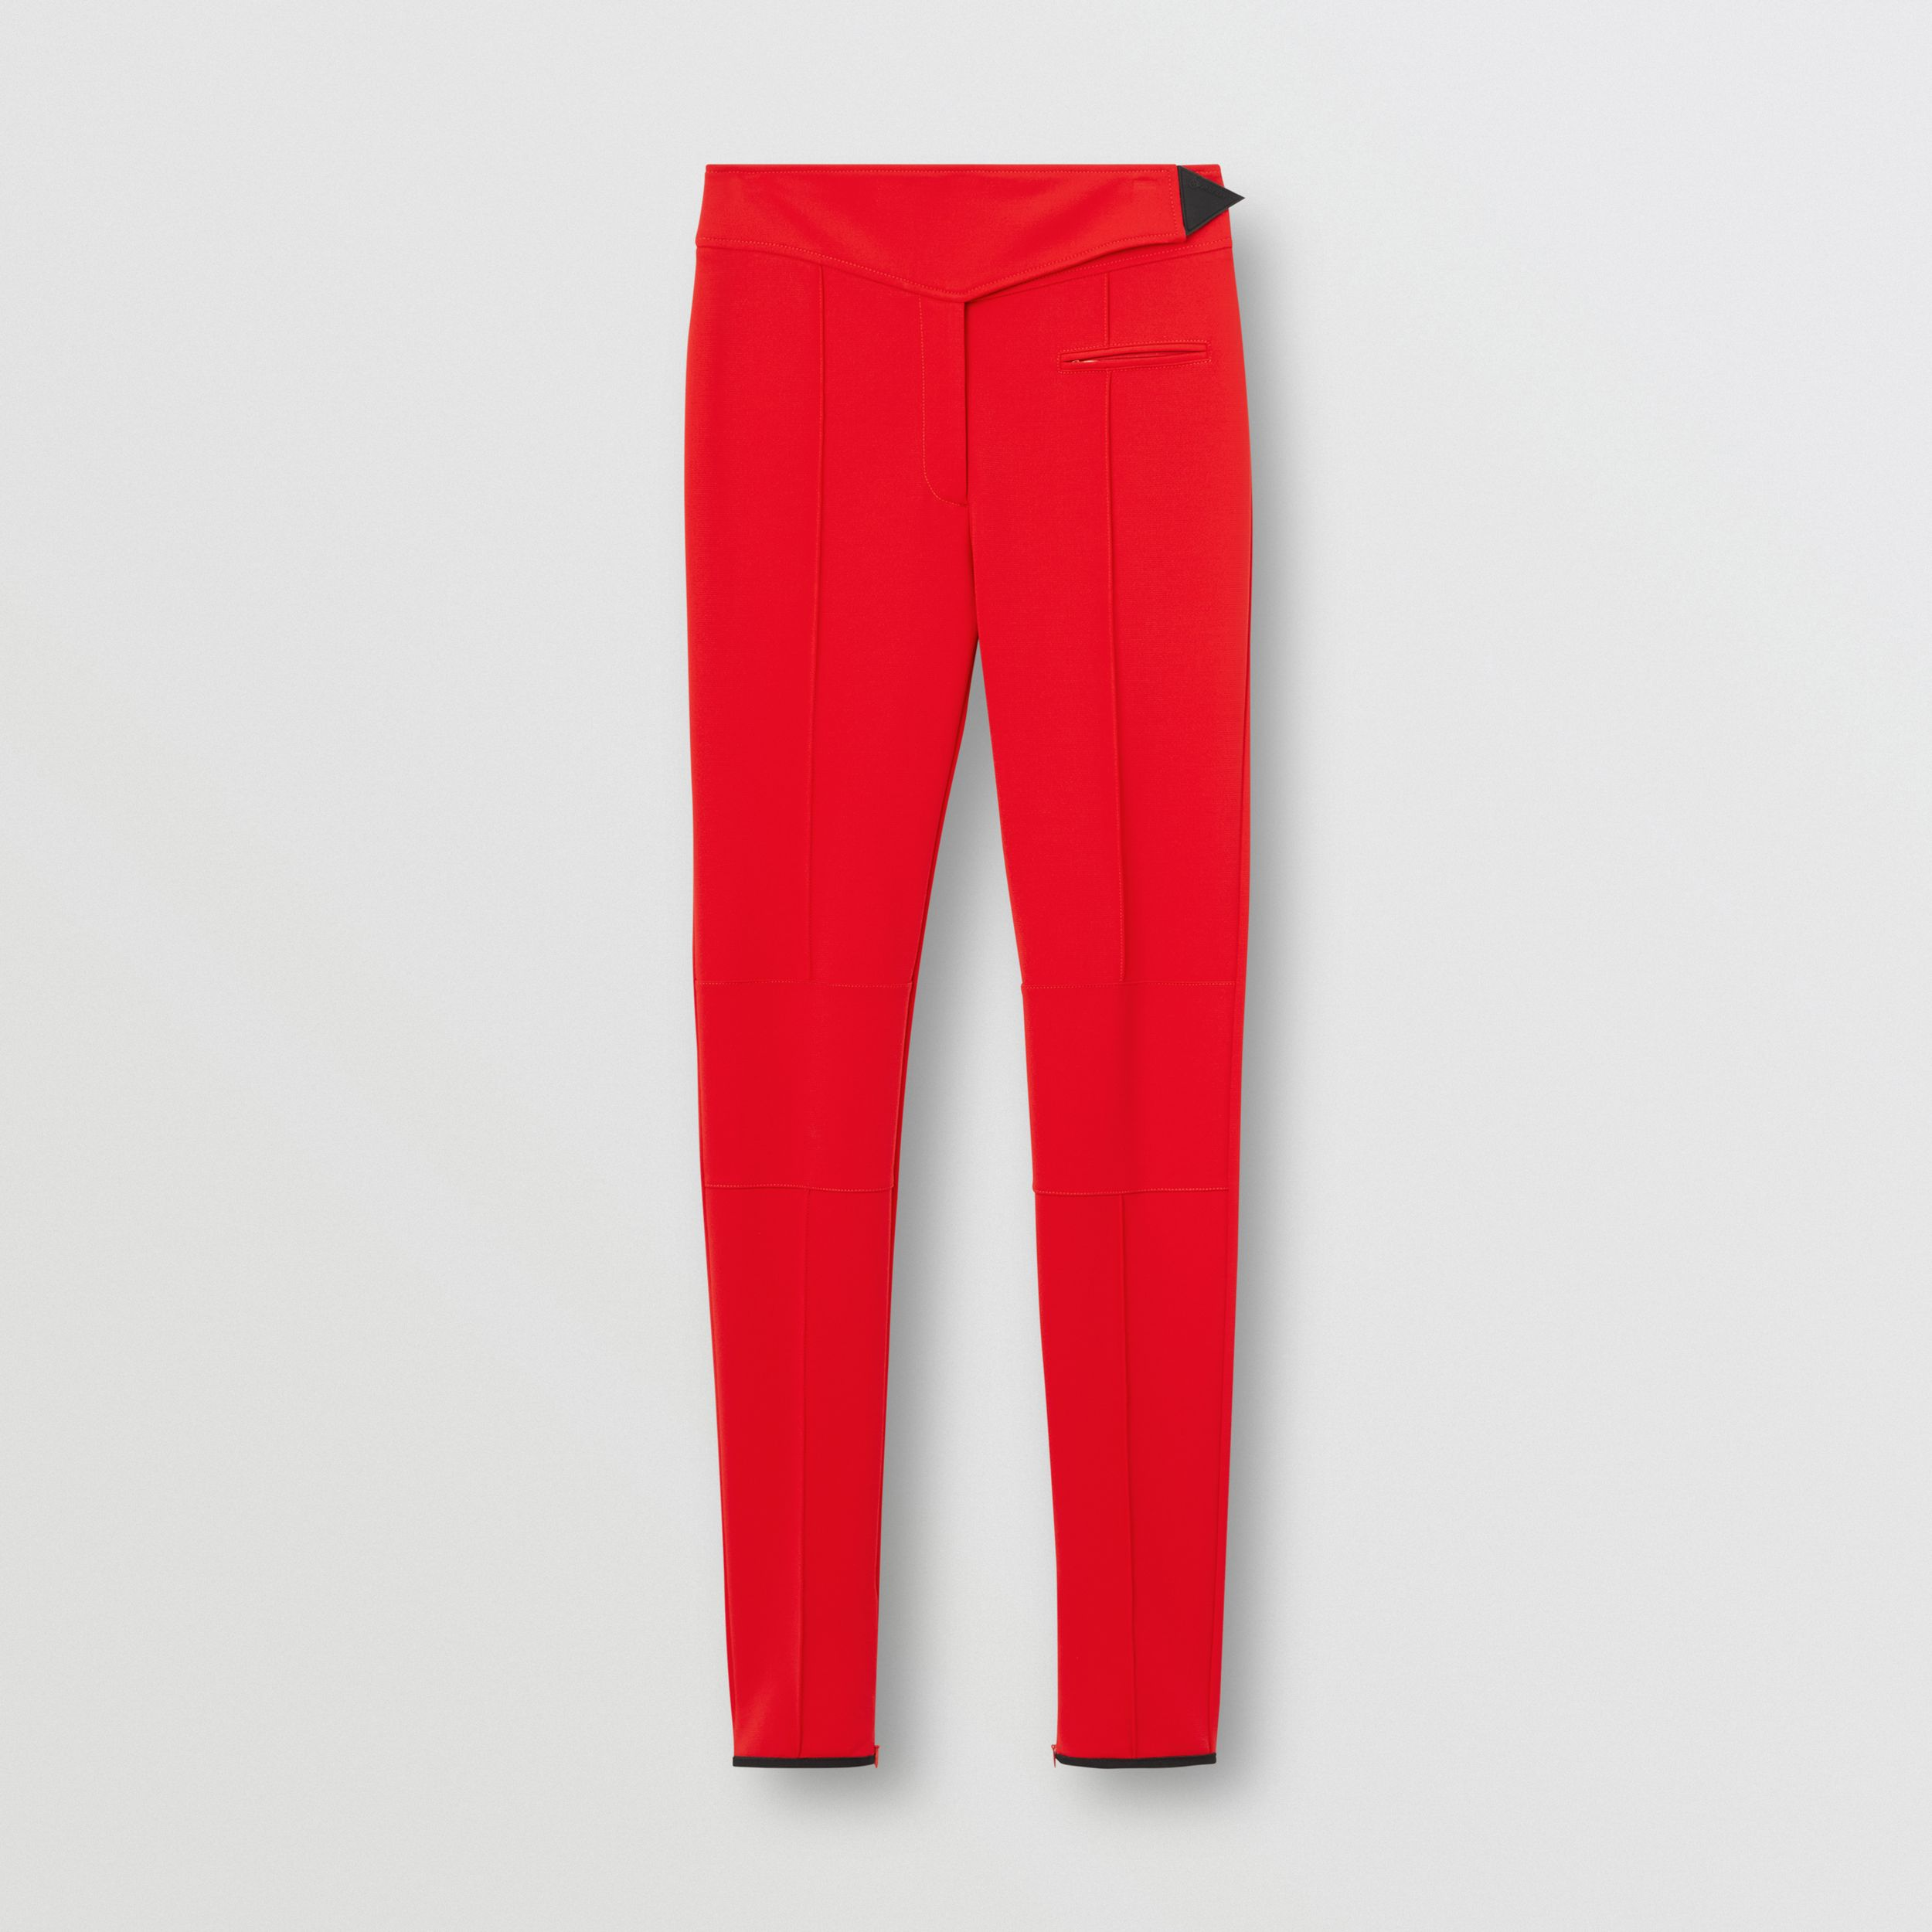 Stretch Crepe Jersey Jodhpurs in Bright Red - Women | Burberry - 4